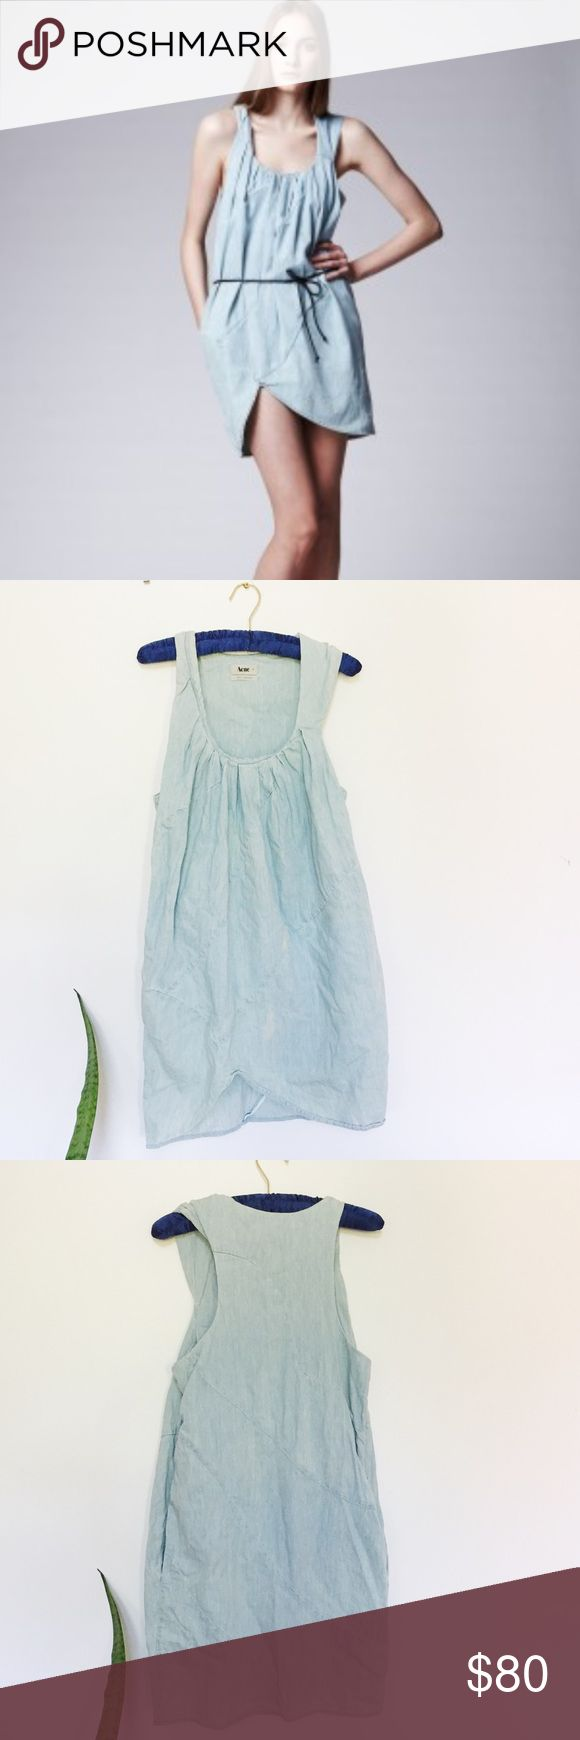 Acne Denim Mini Dress Super chic Acne Dress in good condition! There are two white stains on the front, but they sort blend in with the denim wash look. 100% cotton. Please note, it does not come with the belt in the first photo. Lightweight and loose fit, perfect for comfy summer days 💚 beautiful quality. Acne Dresses Mini